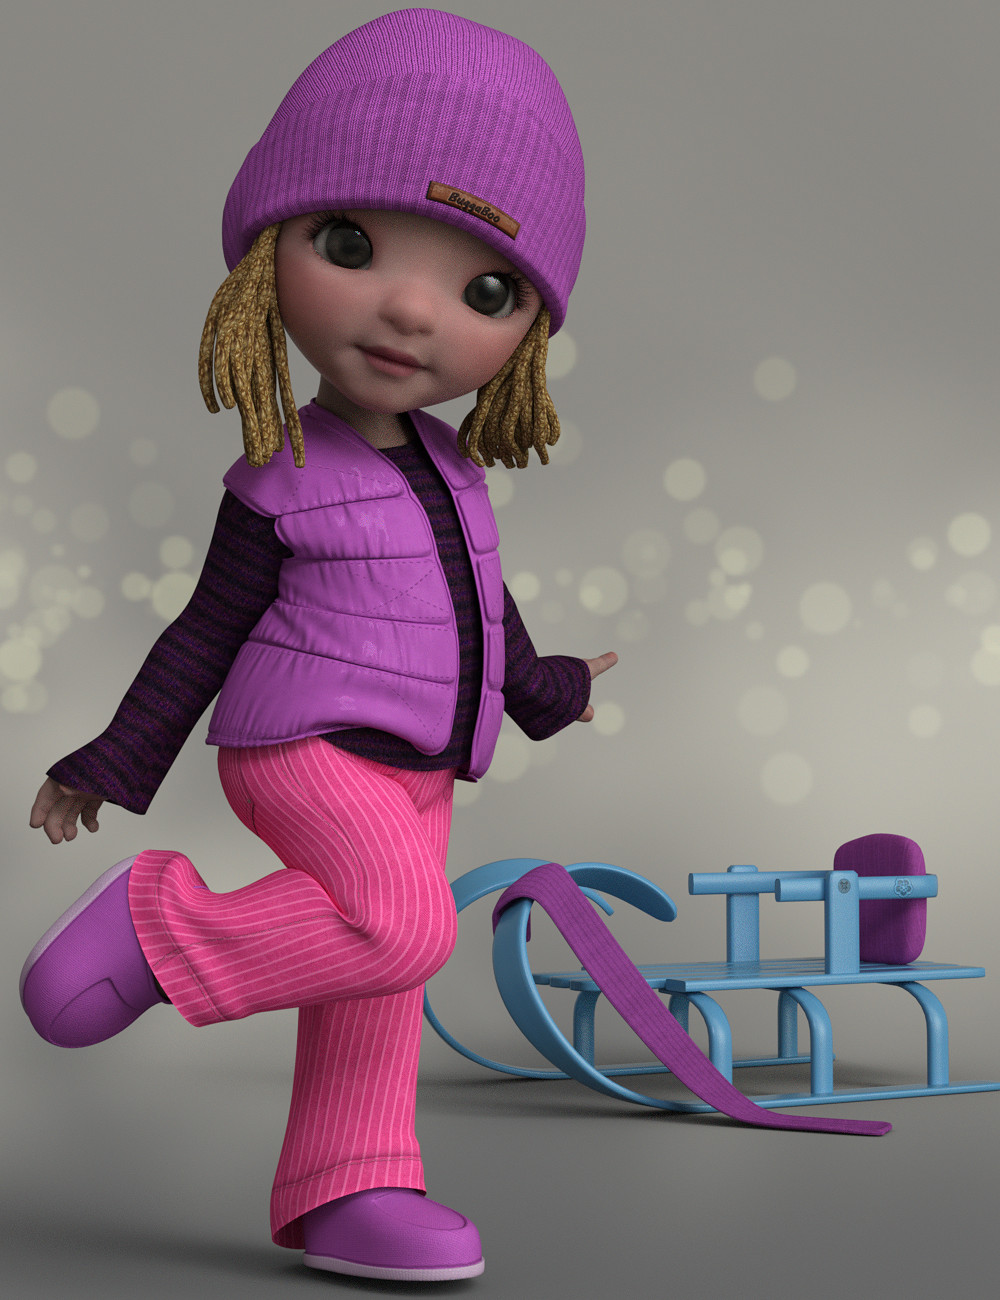 Pastells for Winter Outfit for BuggaBoo by: Karth, 3D Models by Daz 3D